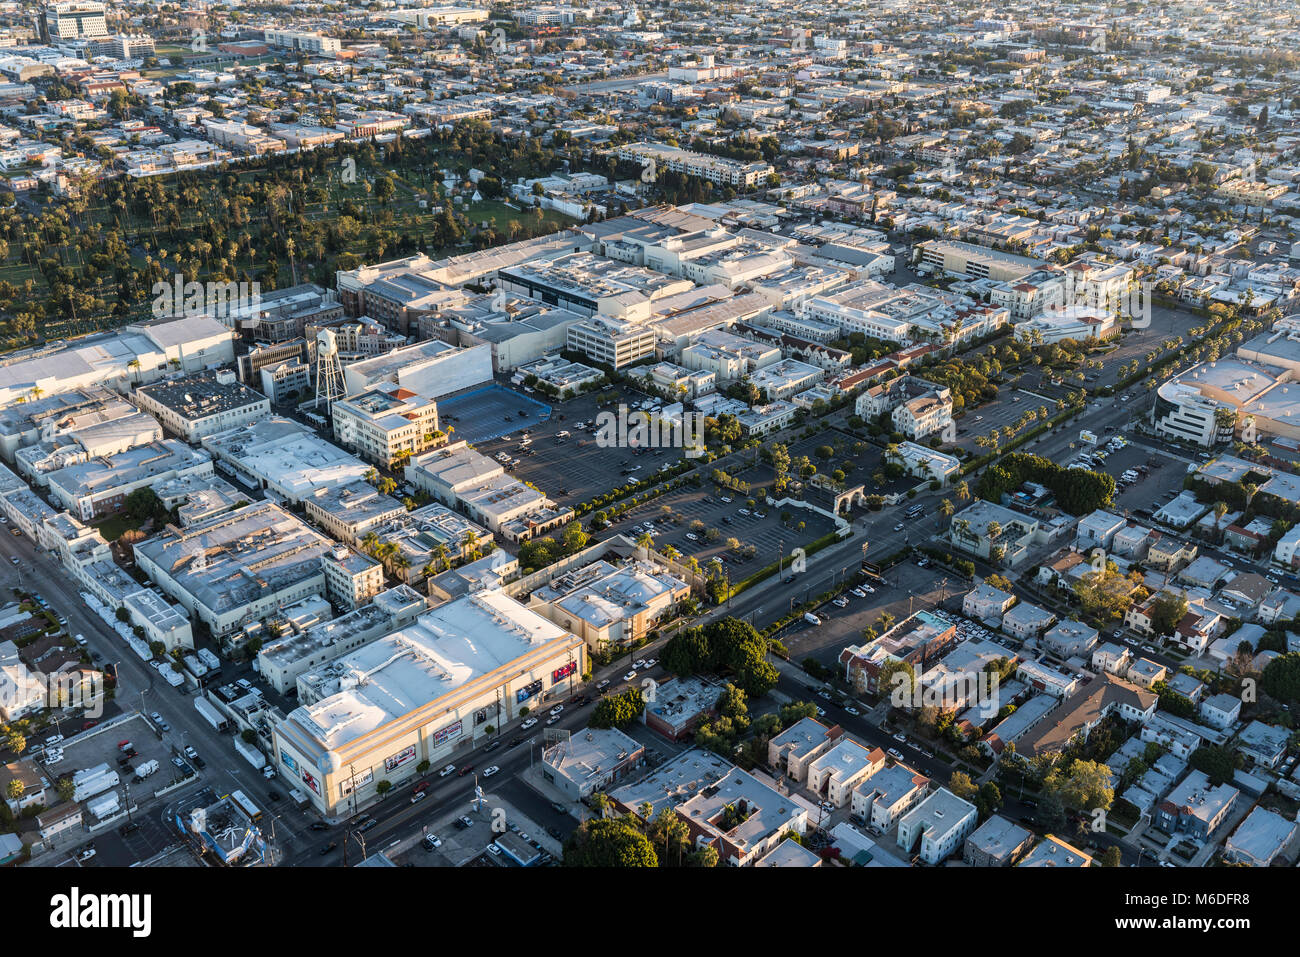 Los Angeles, California, USA - February 20, 2018:  Aerial view of Paramount Pictures Studio on Melrose Av in Hollywood. - Stock Image